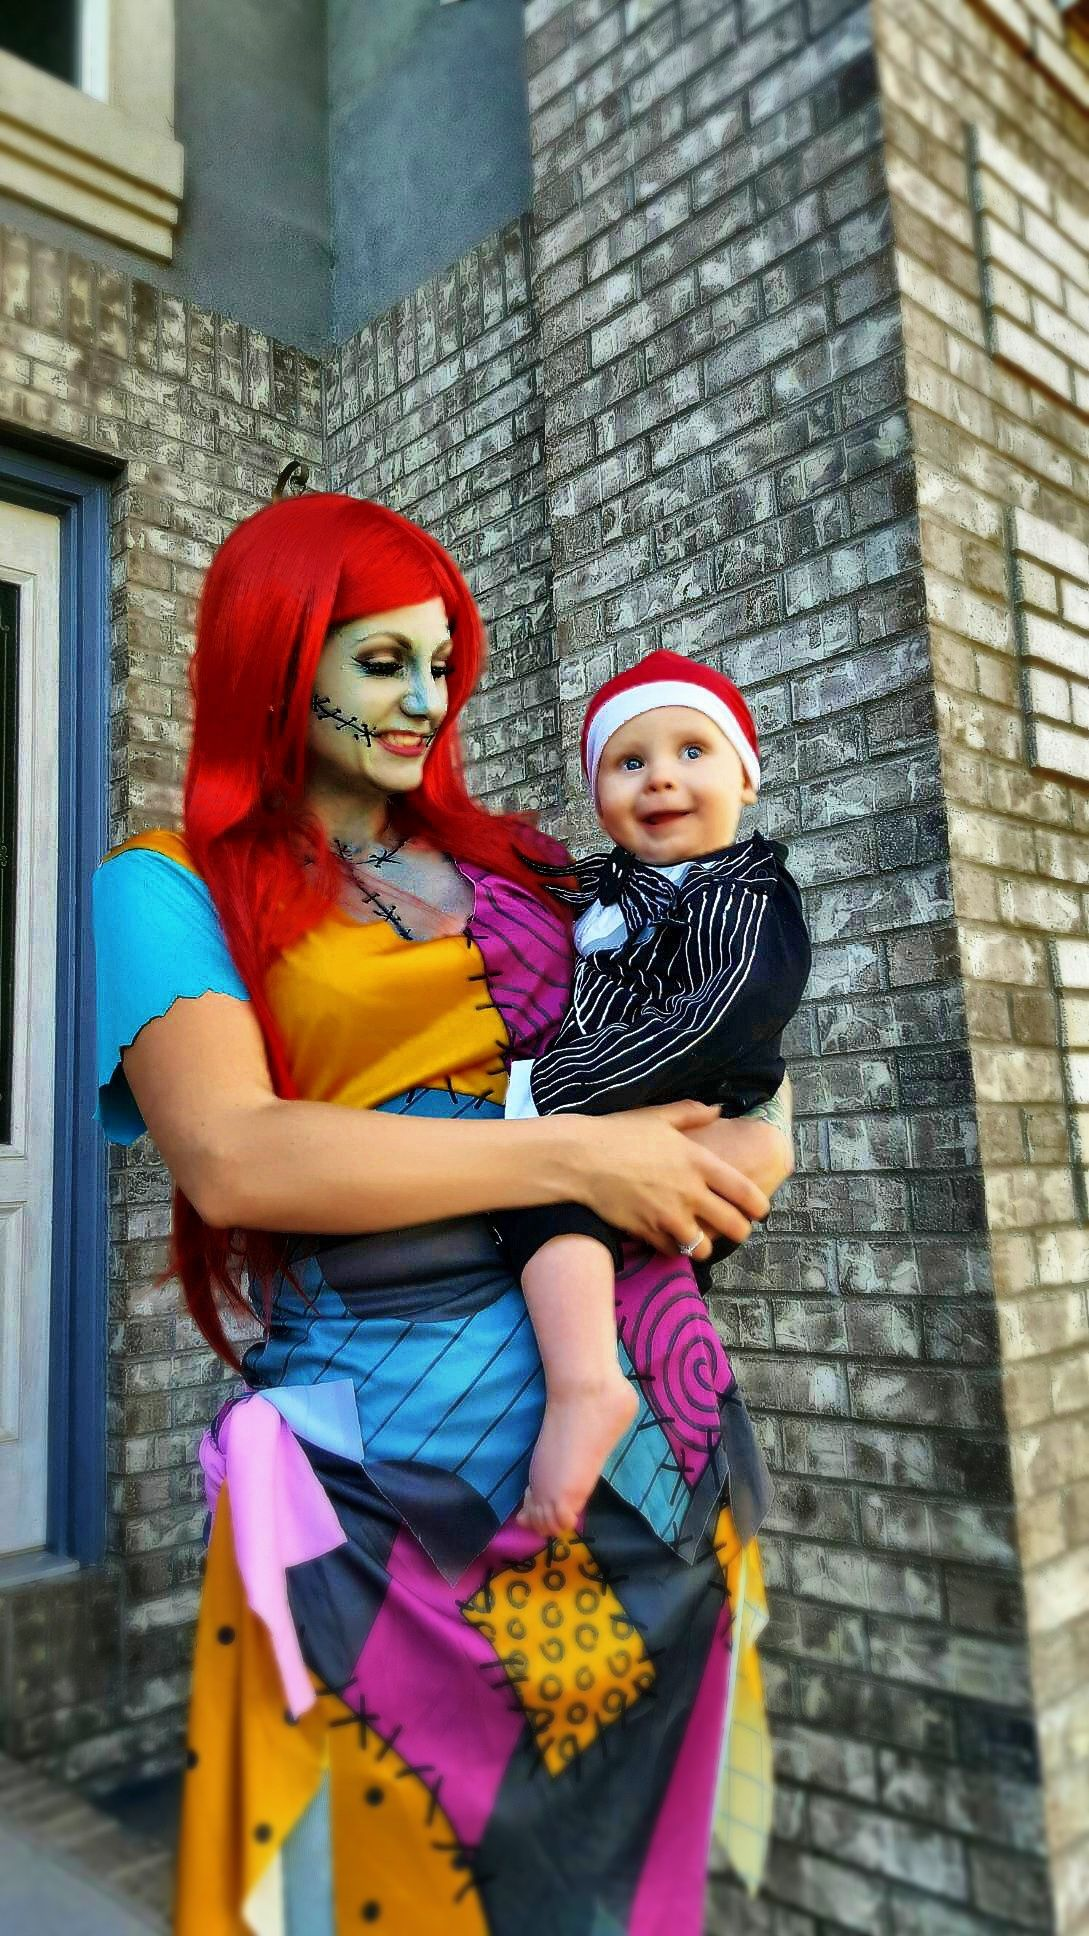 Jack and sally costume mother and son Halloween costume instagram Akfortyseven89  sc 1 st  Pinterest & Jack and sally costume mother and son Halloween costume instagram ...